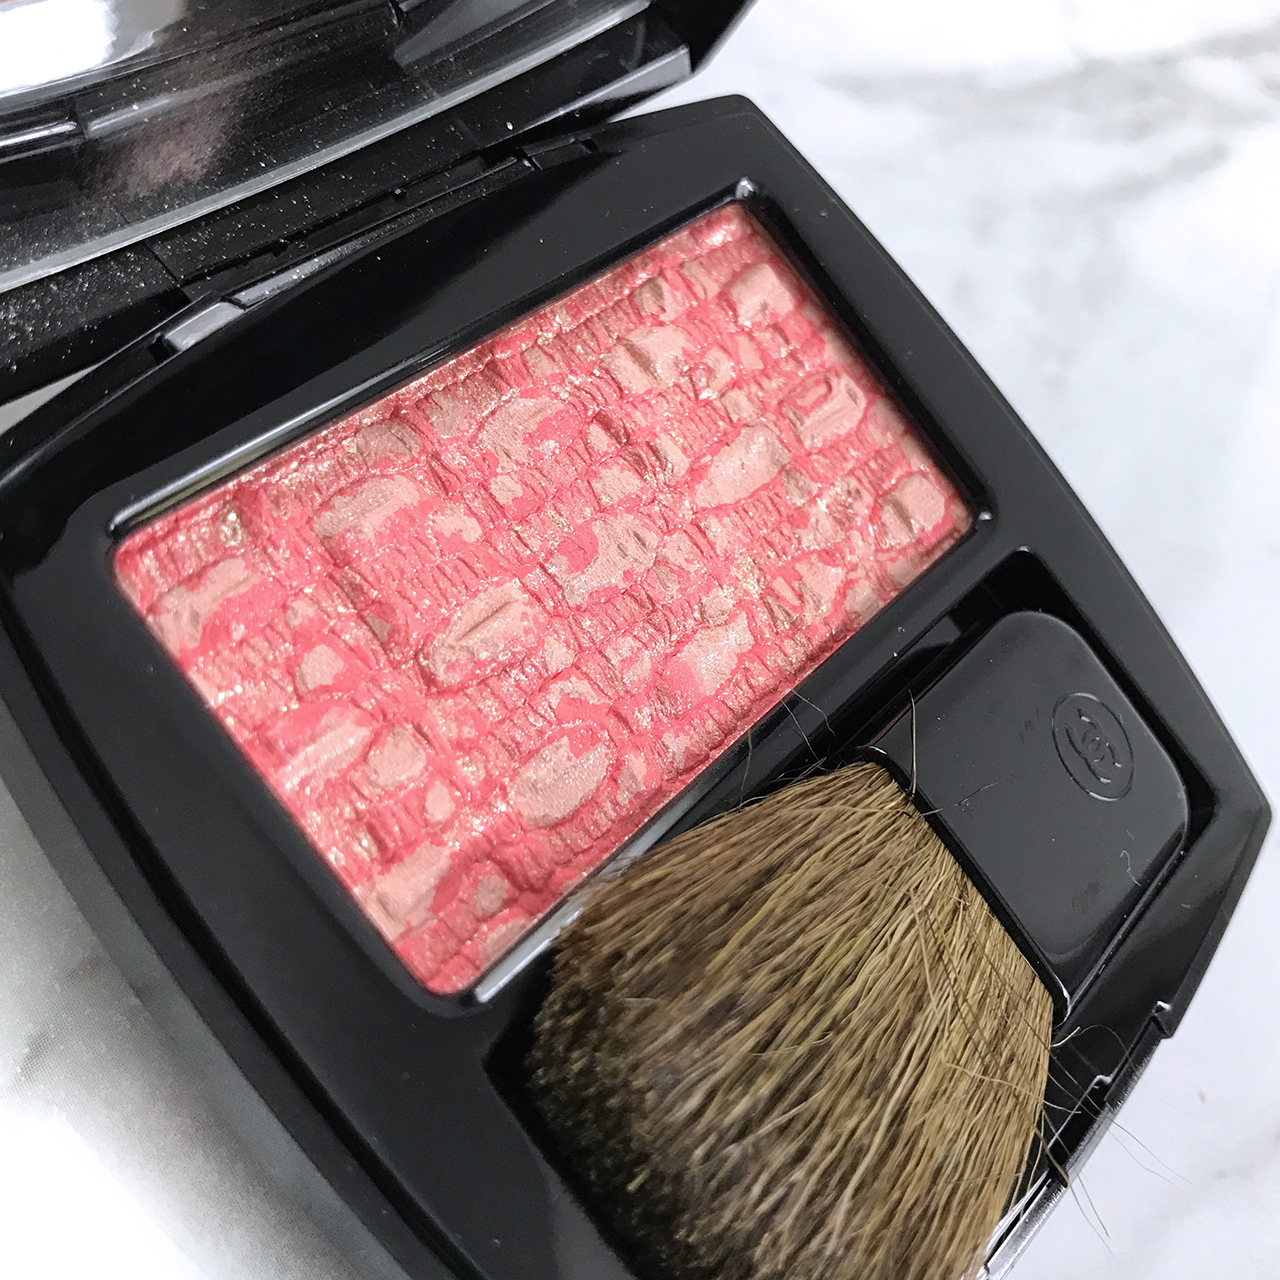 Les Tissages de Chanel Tweed Coralline